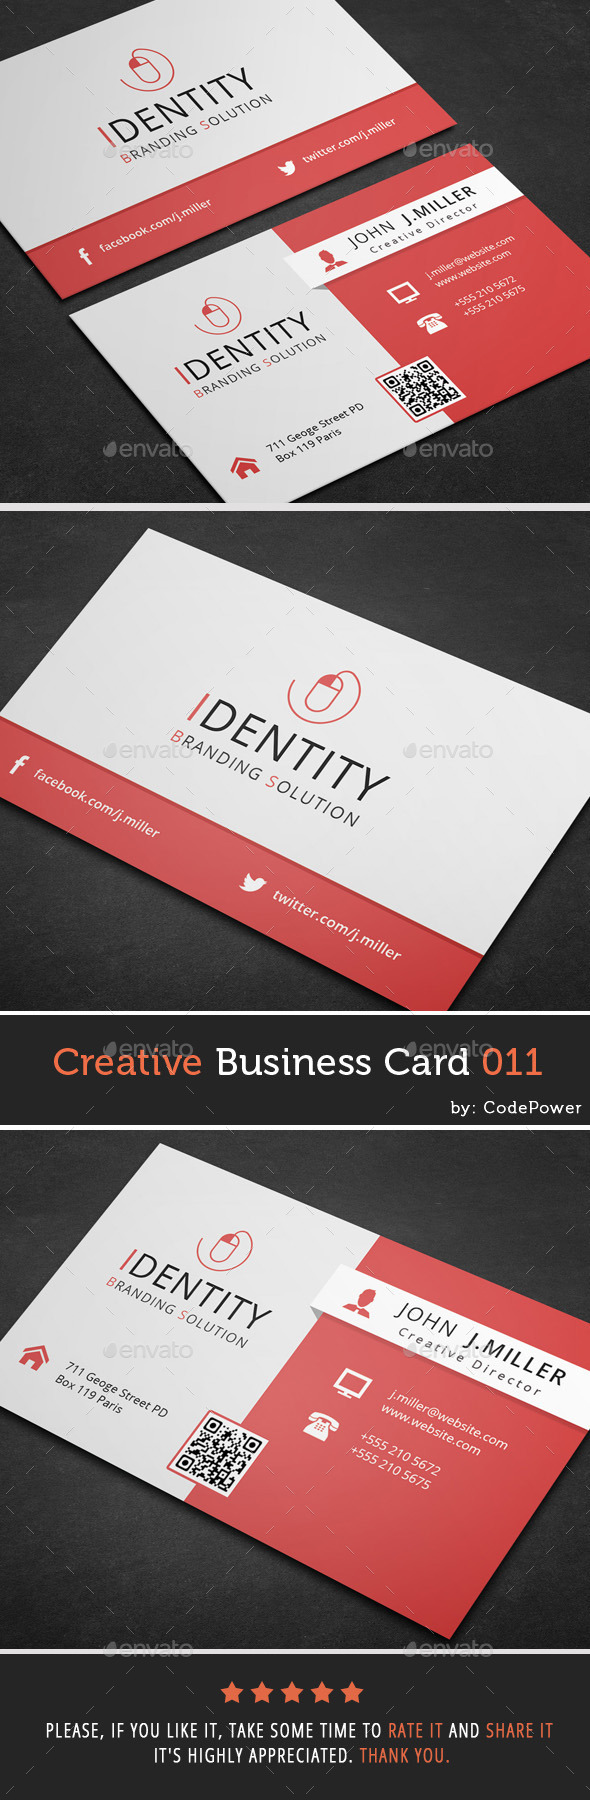 GraphicRiver Creative Business Card 011 9854224